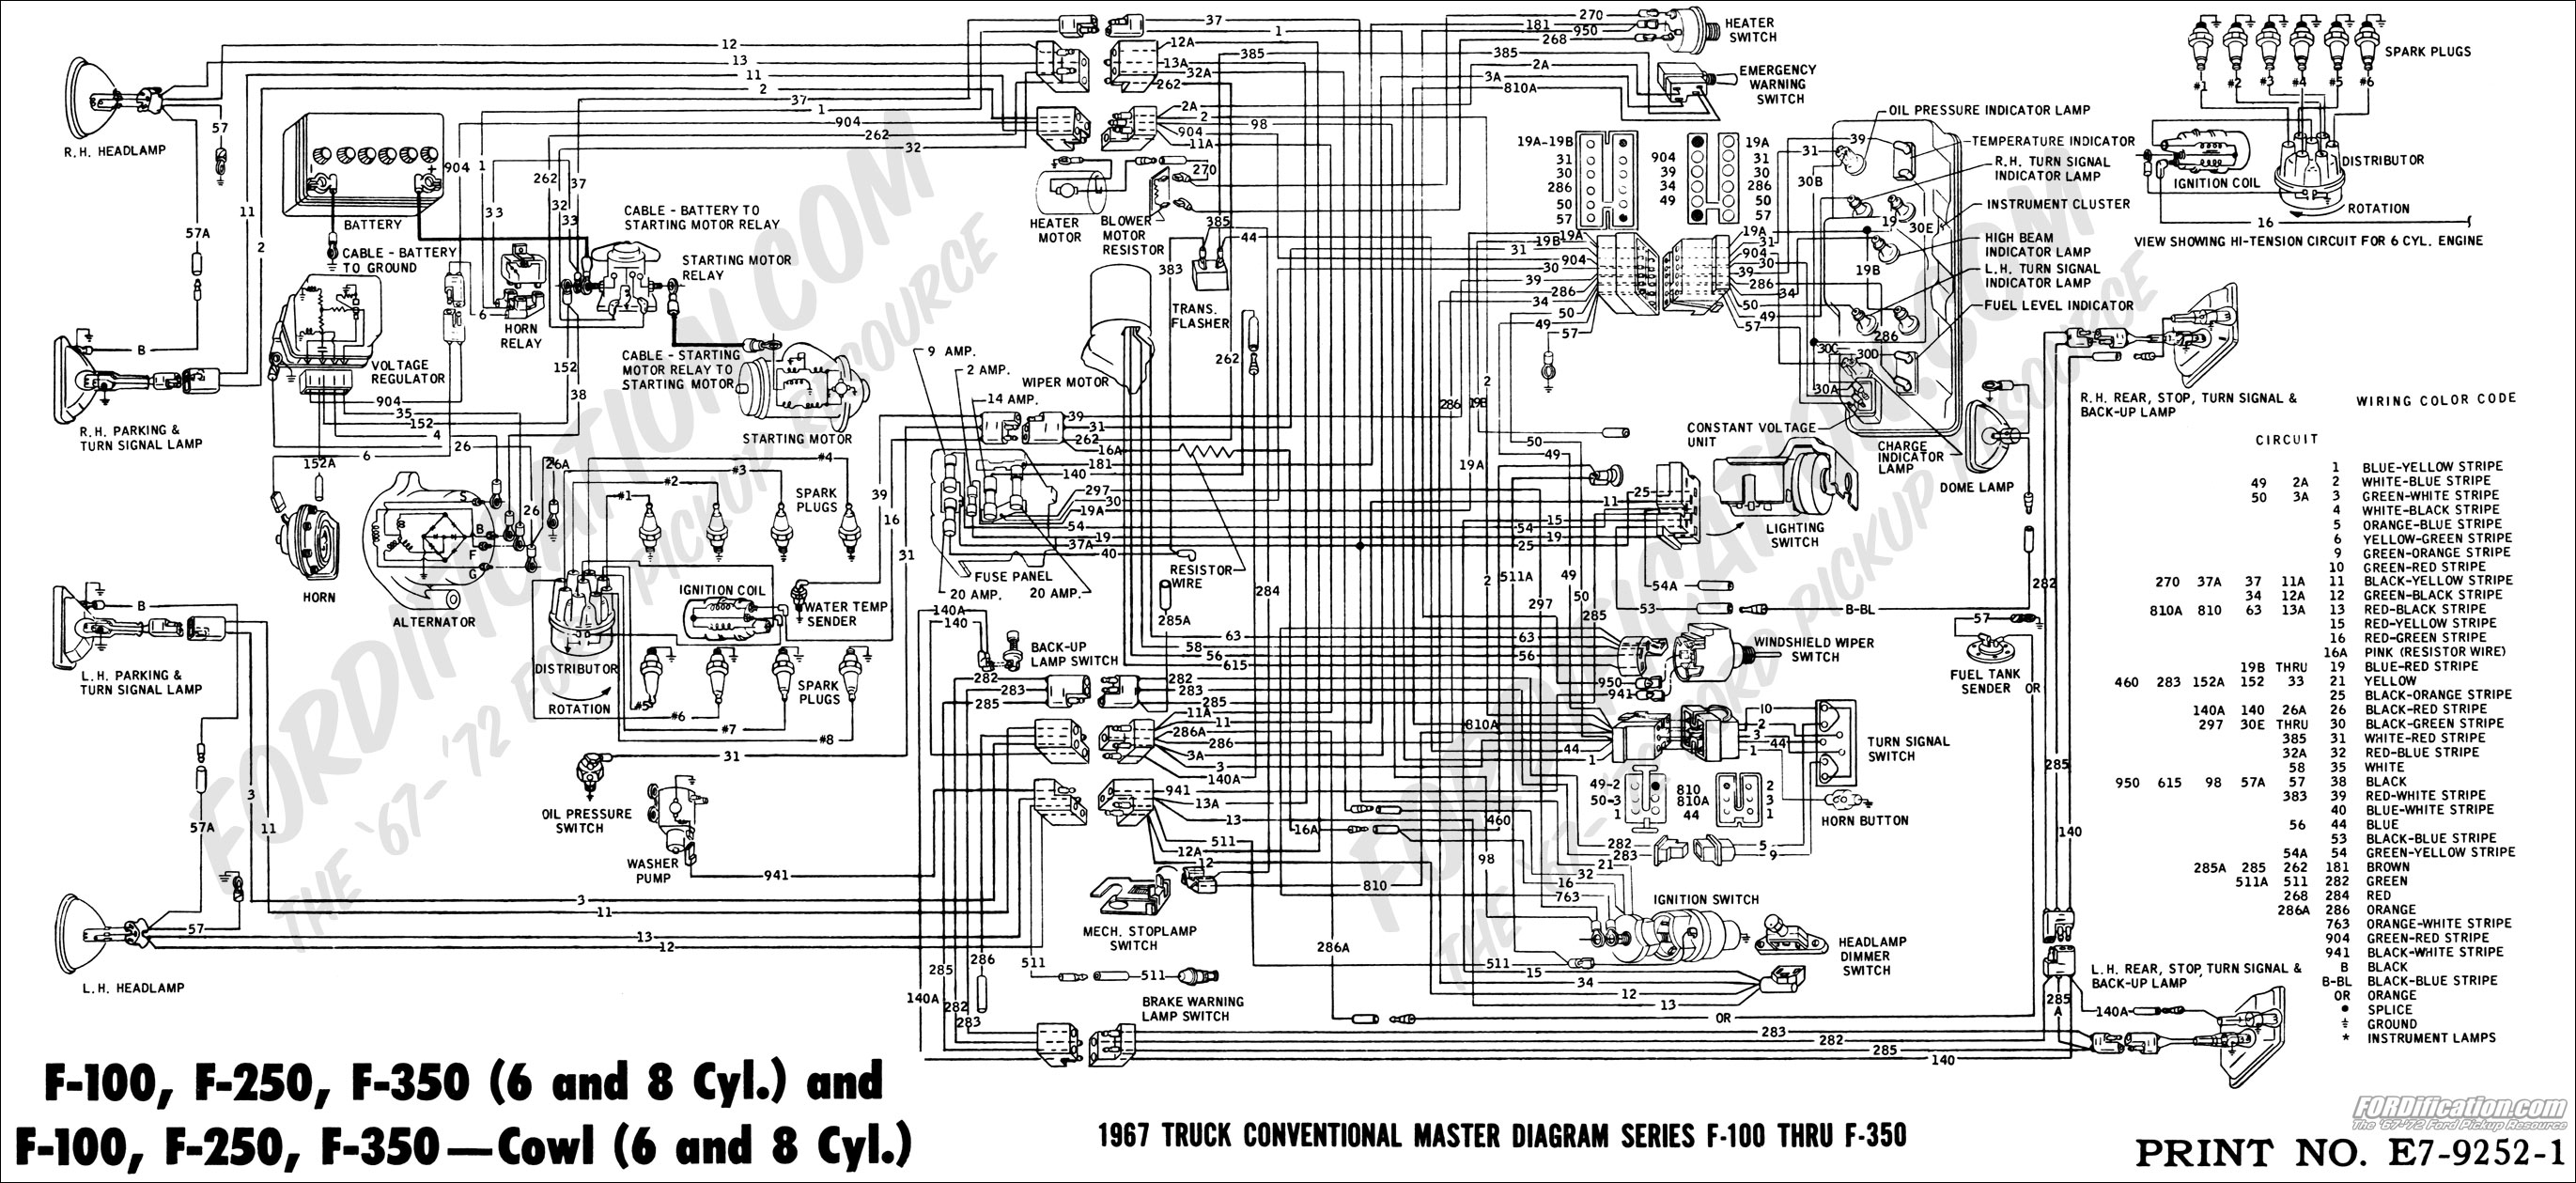 67masterdiagram 99 f150 wiring diagram 99 f150 stereo wiring diagram \u2022 wiring 1999 ford ranger xlt wiring diagrams at nearapp.co